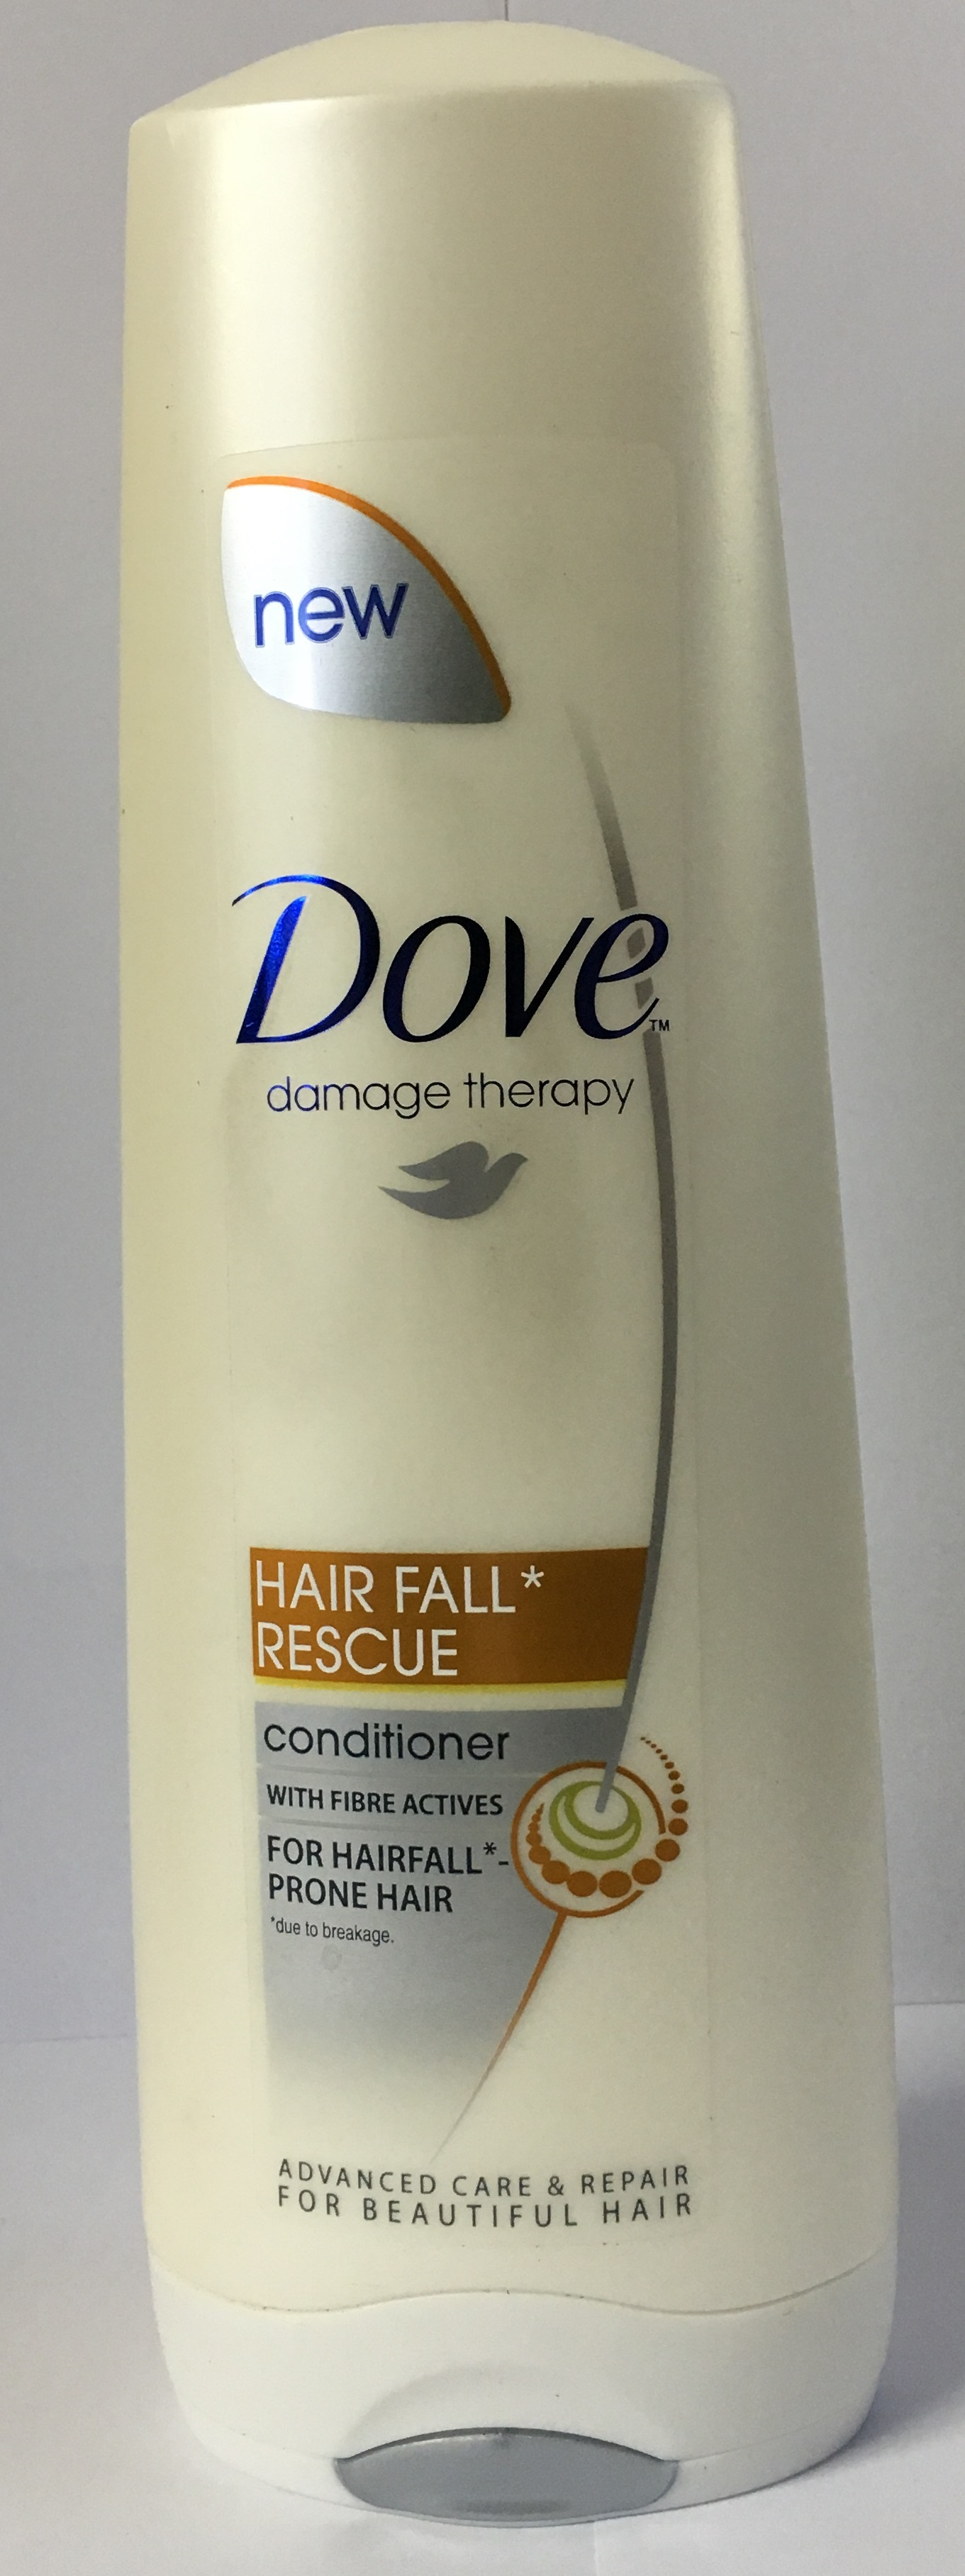 Dove Conditioner Hair Fall Rescue